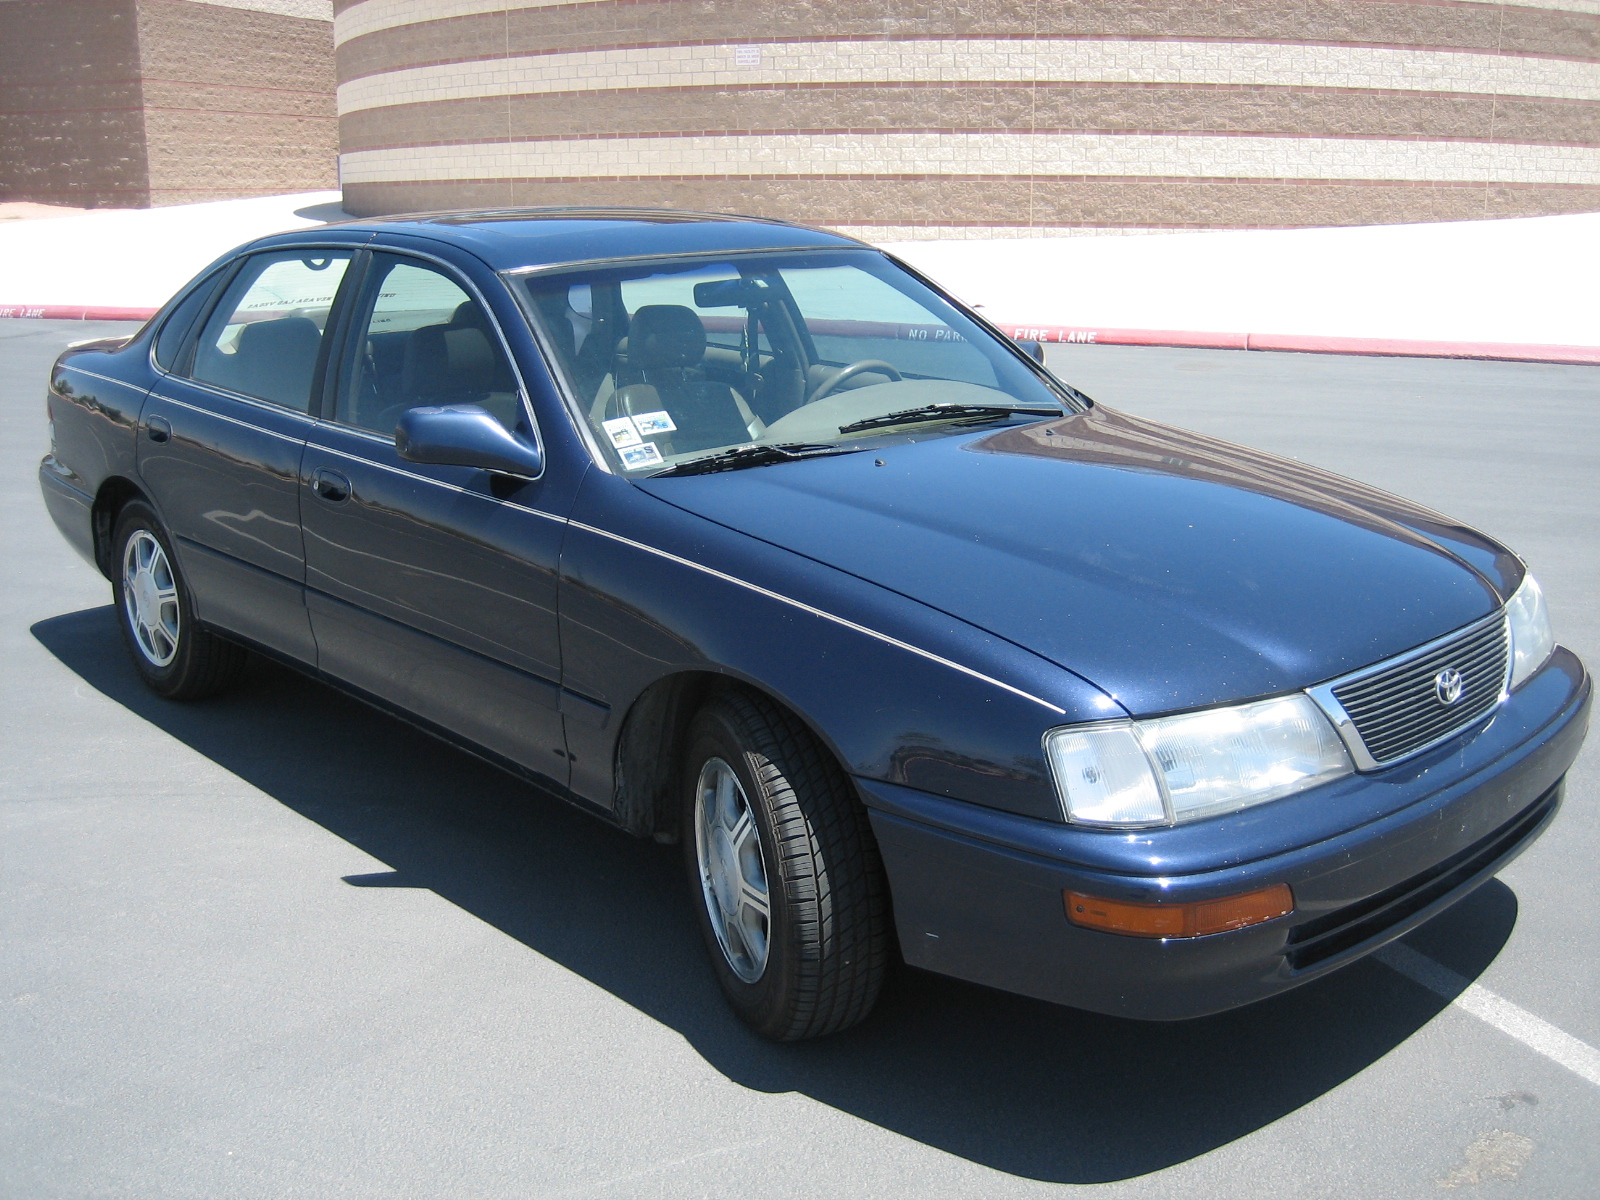 1997 Toyota Avalon 4 Dr XLS Sedan picture